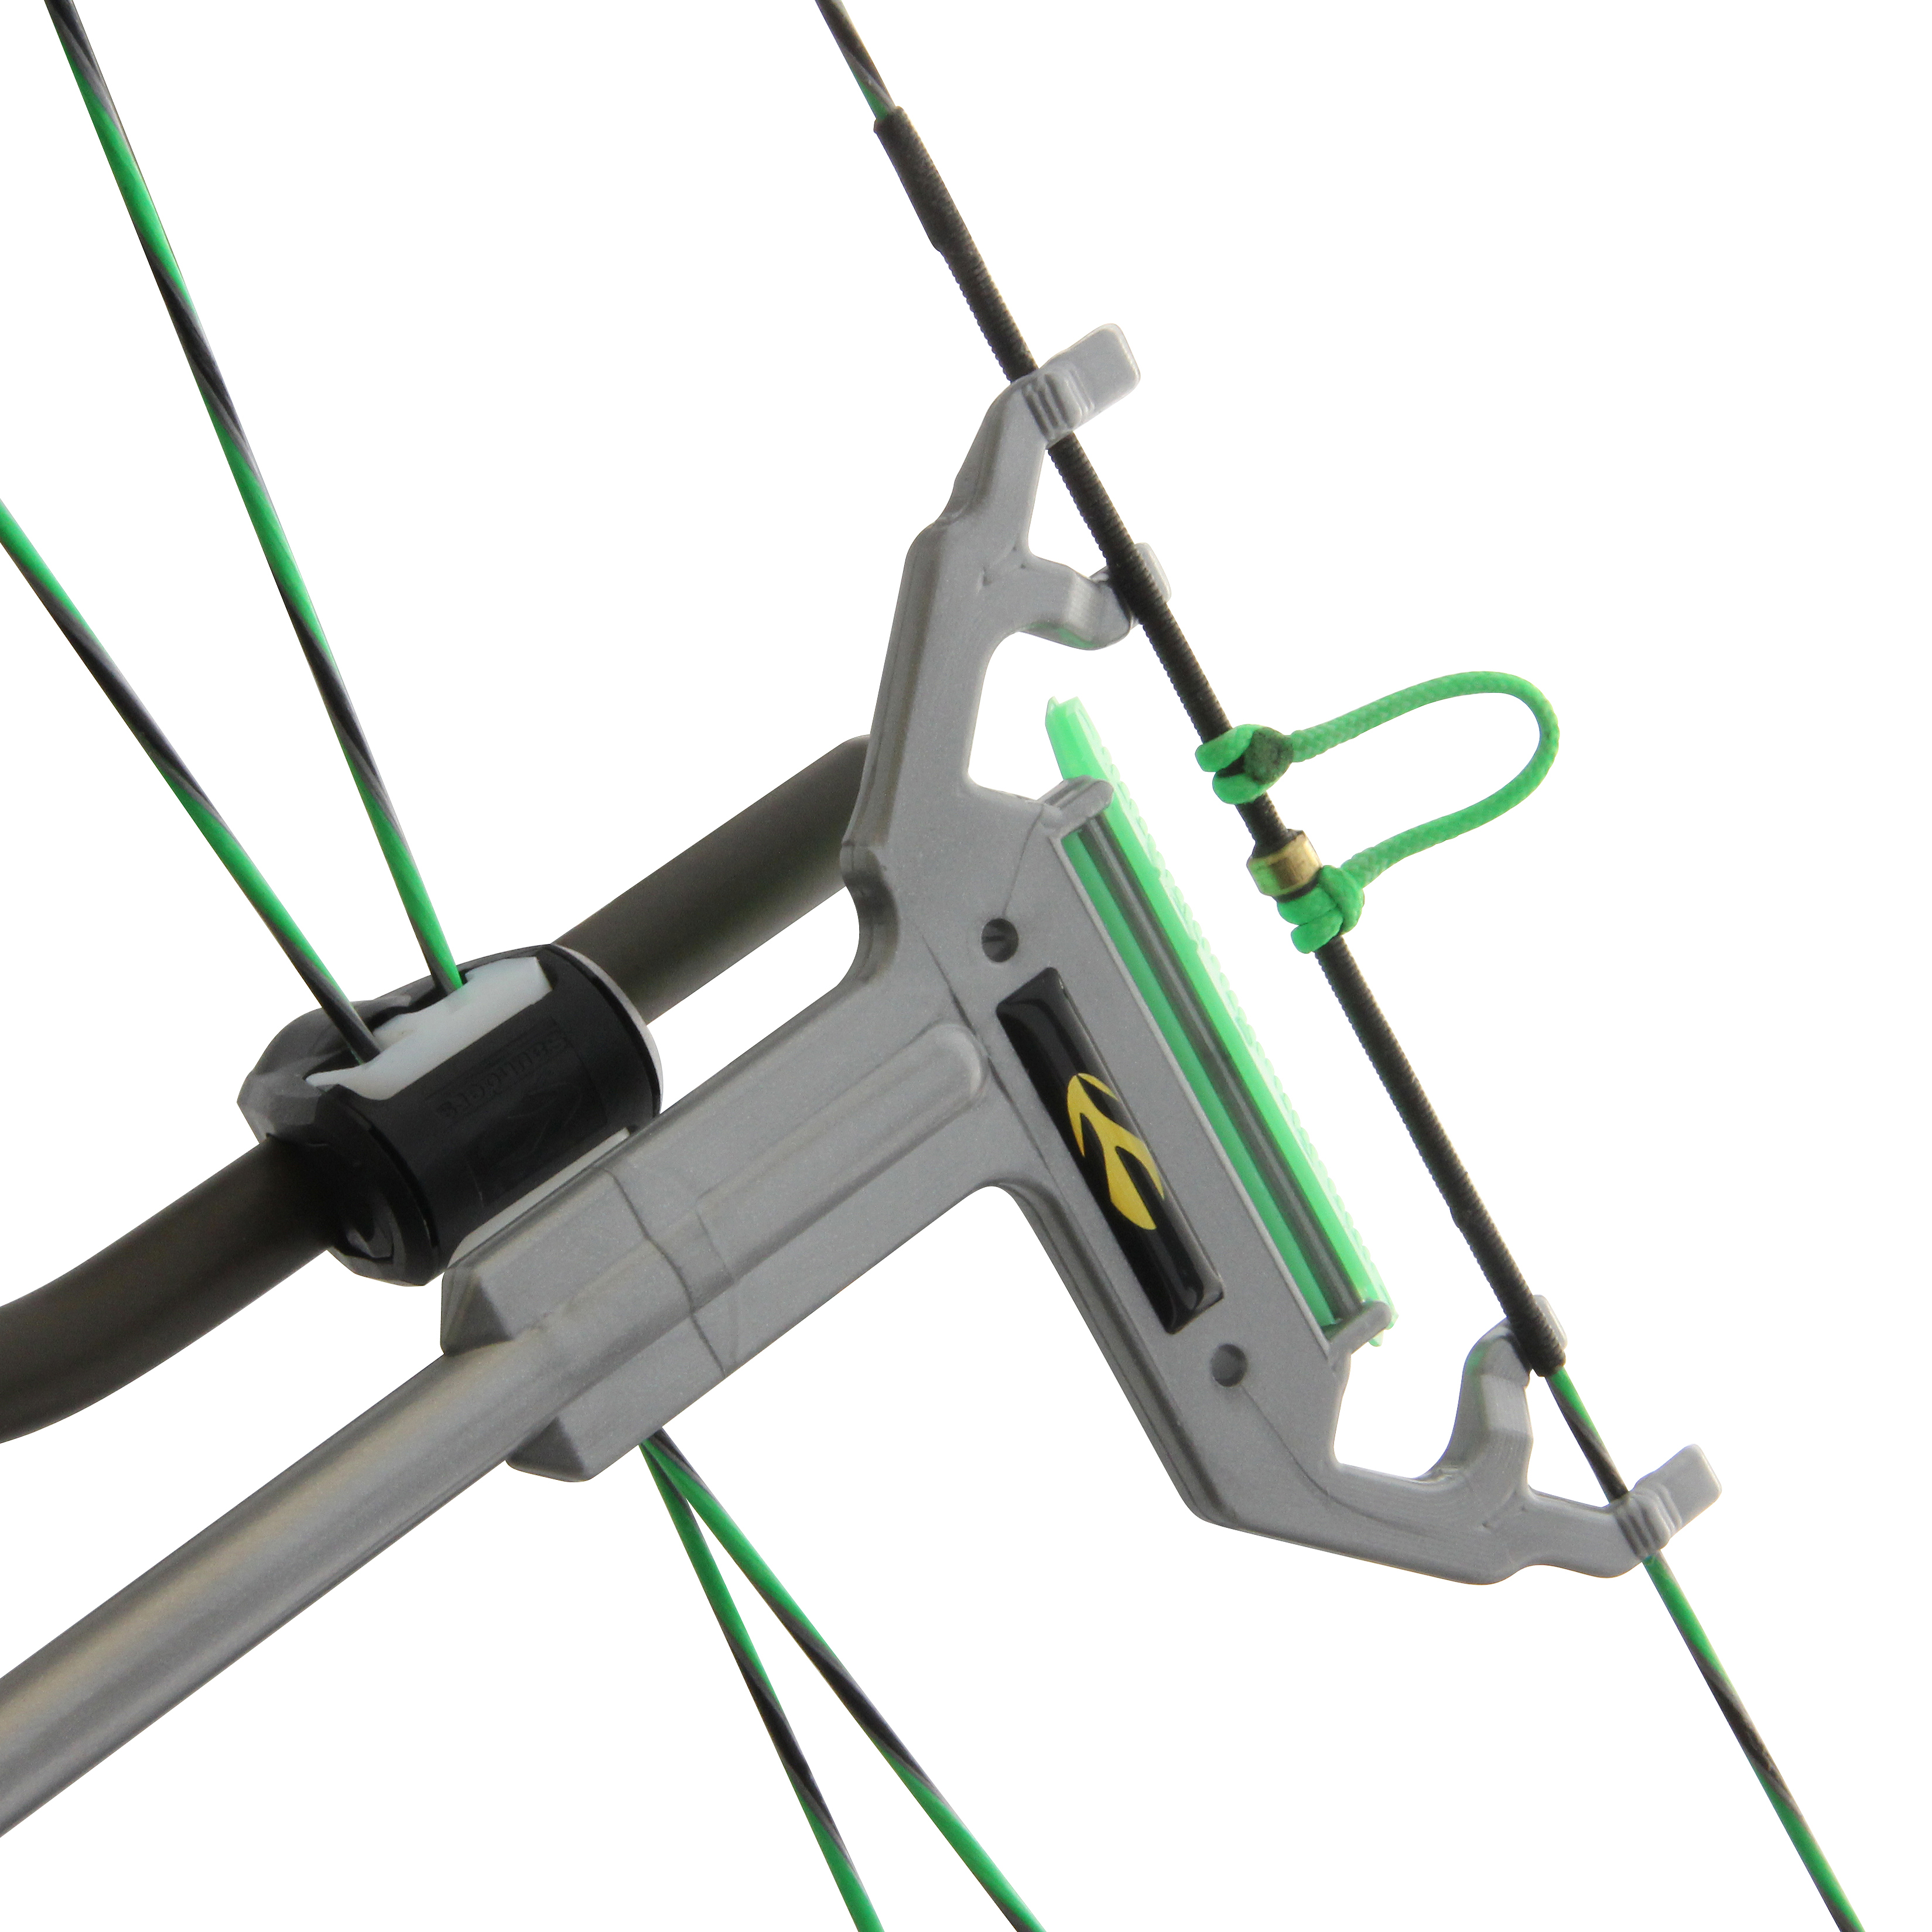 Saunders Forked Horn Bow Square Accessories Archery Tools